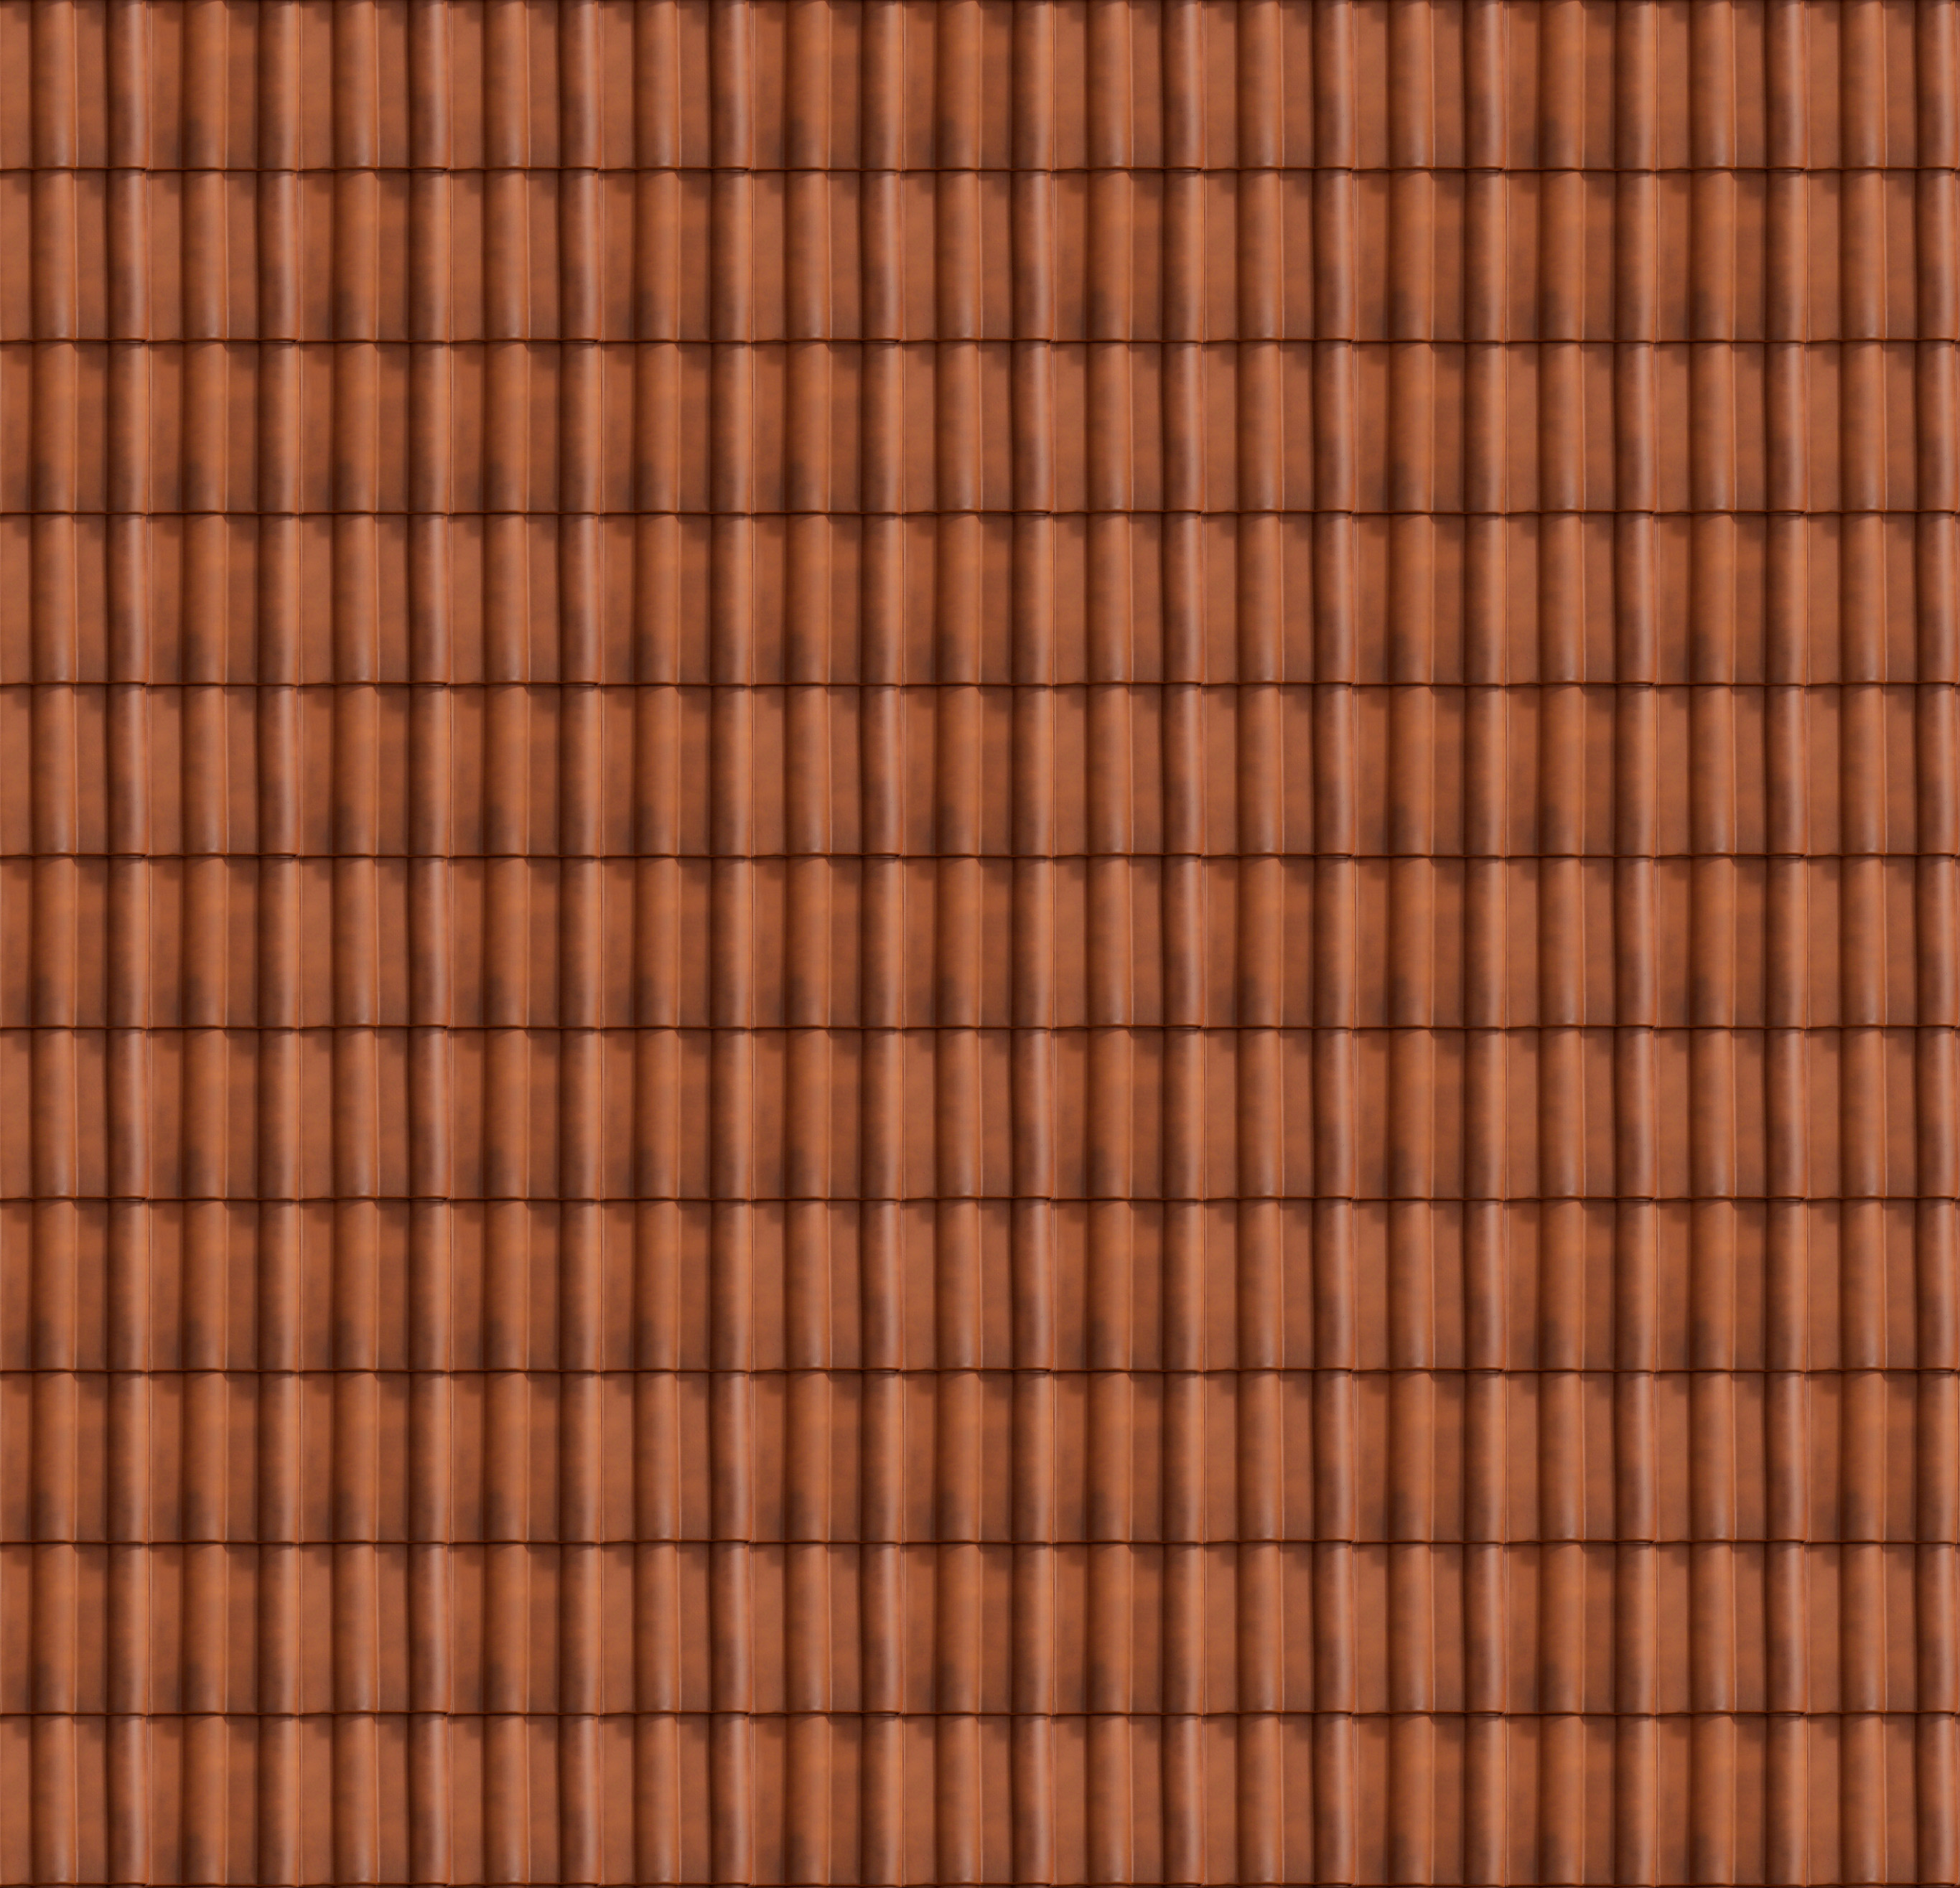 Roofing Texture Background Roof Tile Texture